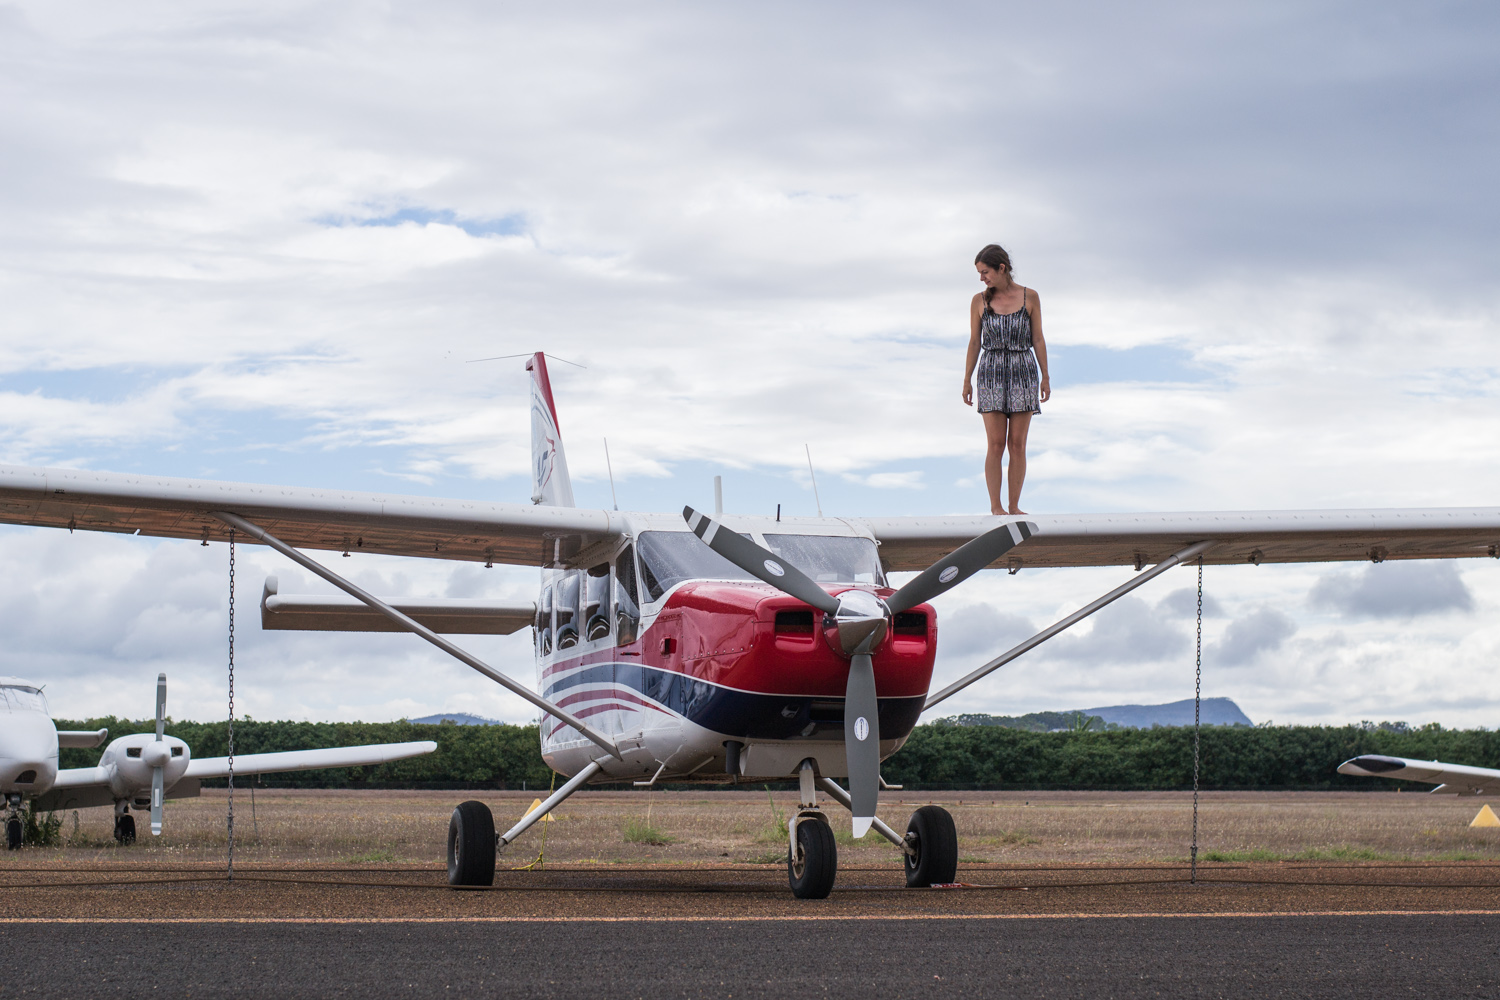 Stand on the wing of a plane • Mareeba, Queensland, Australia •